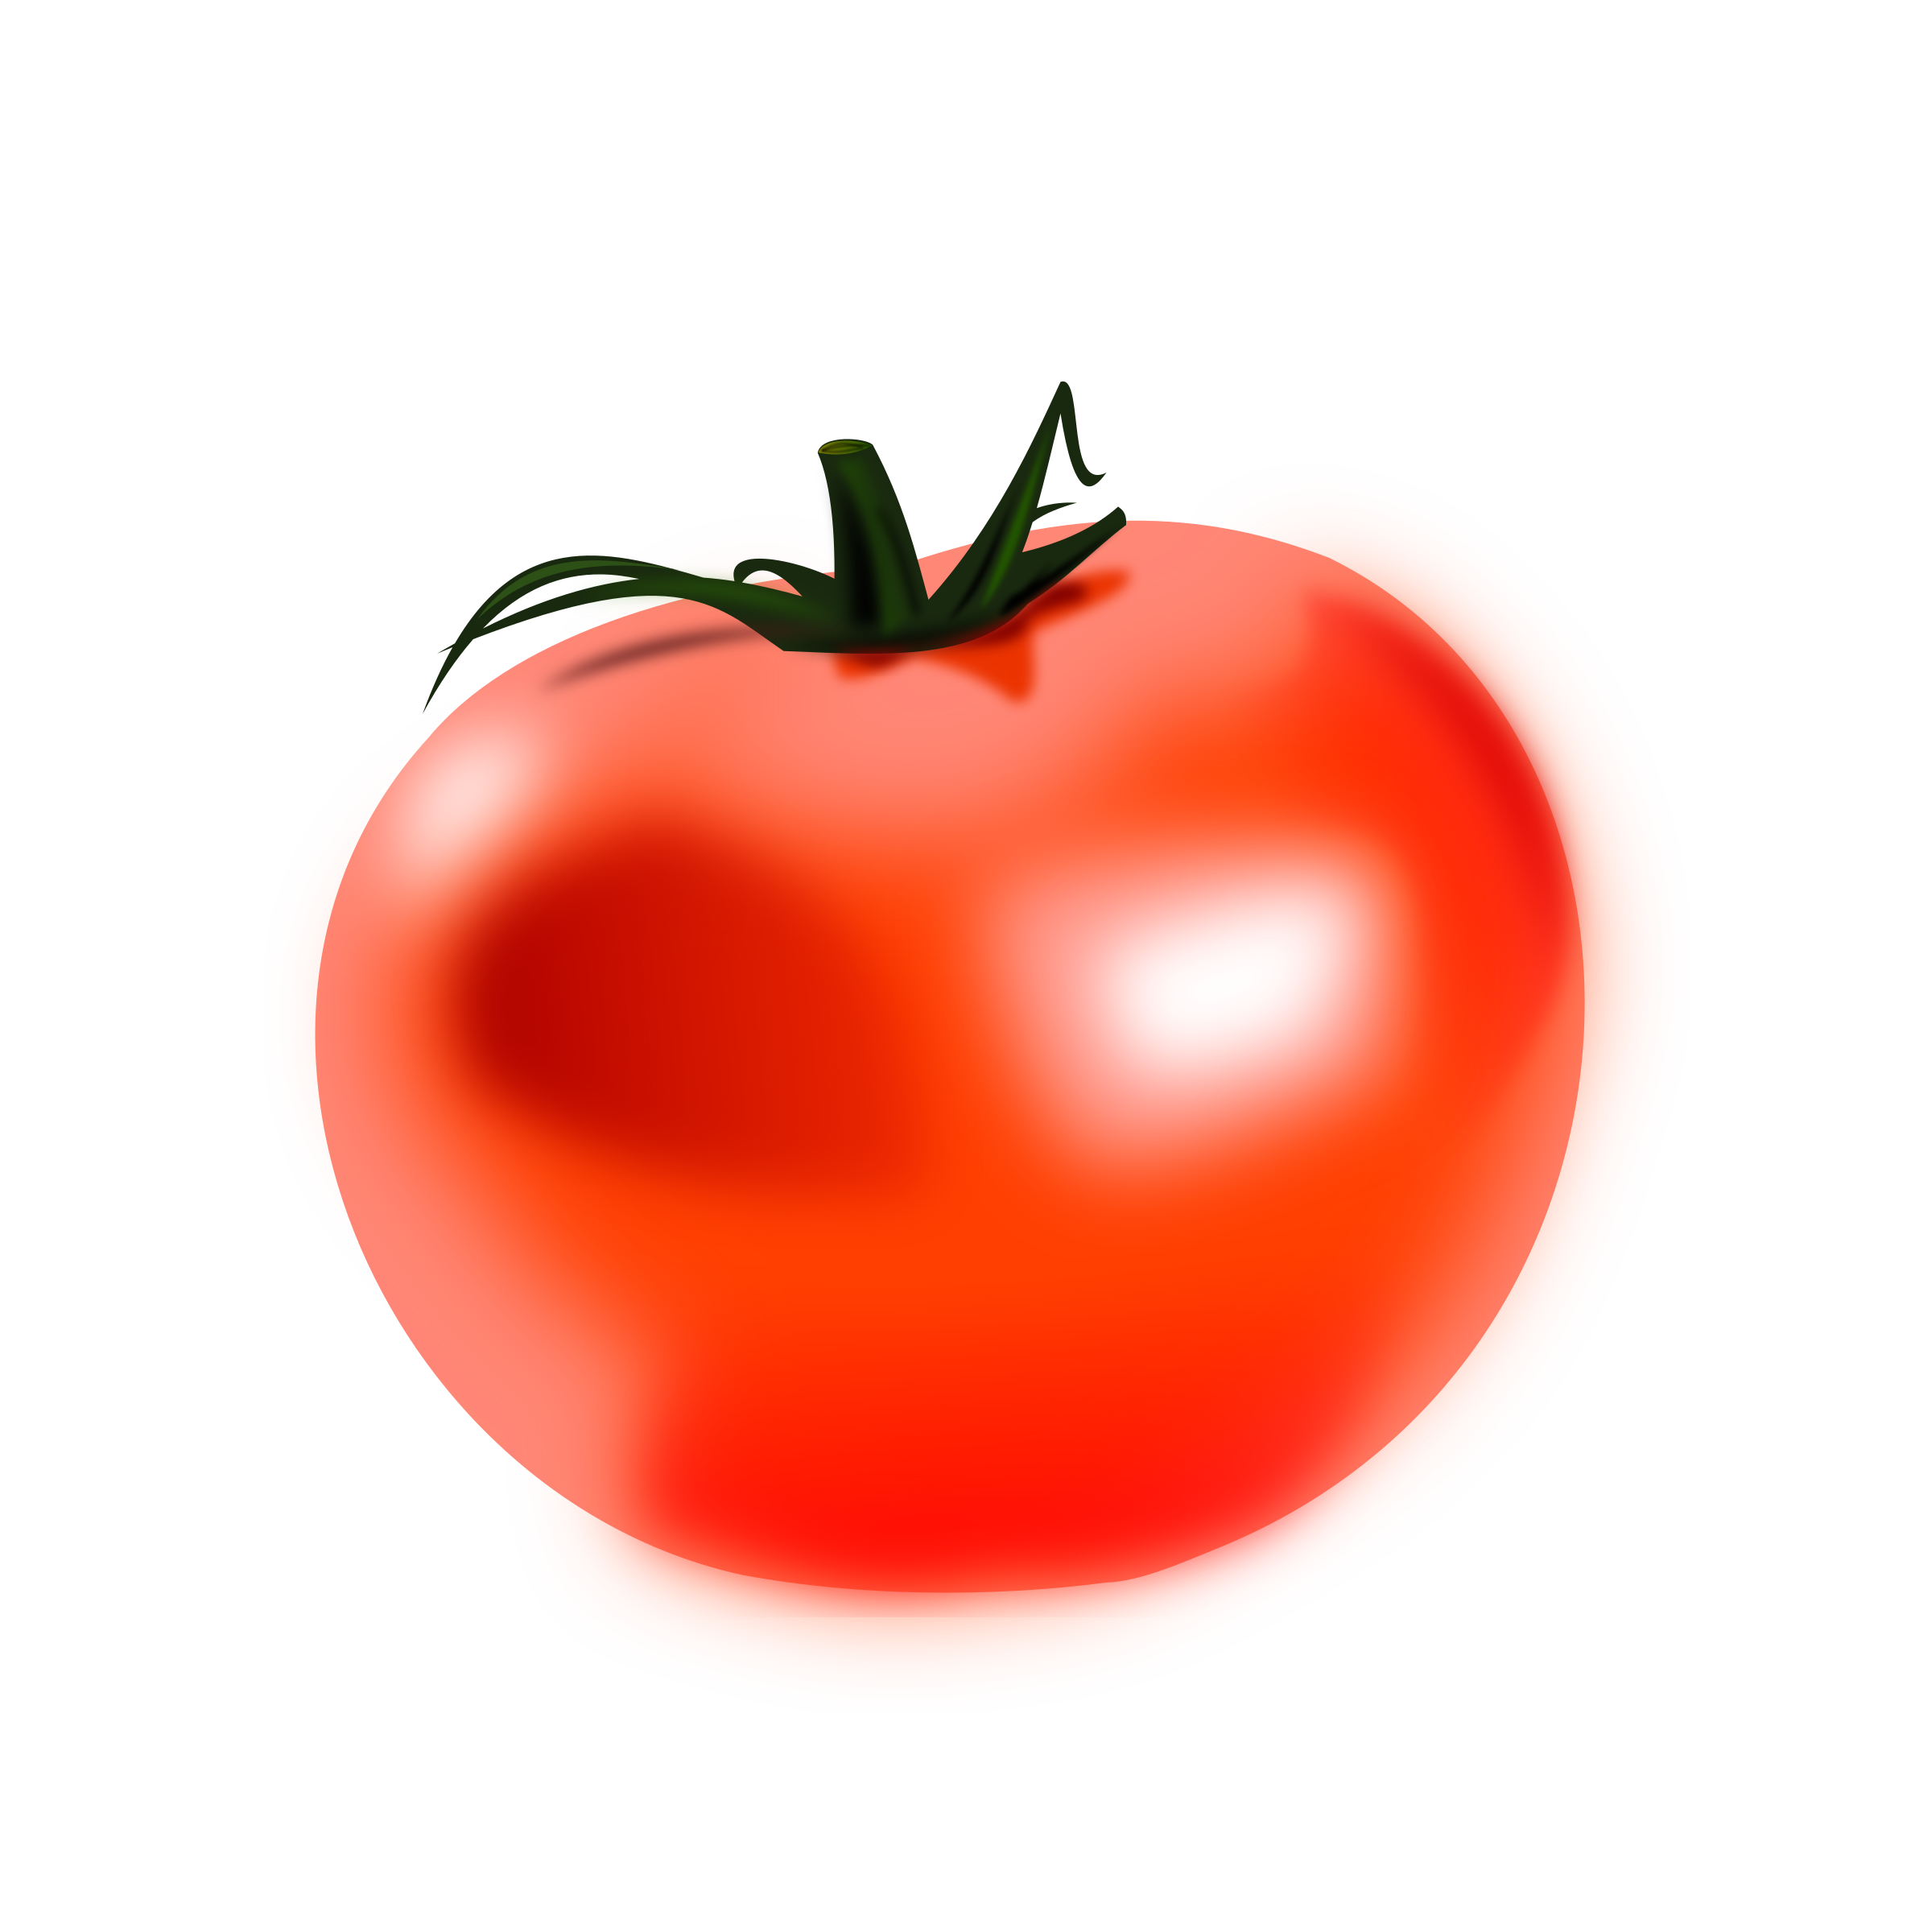 Tomate by roshellin